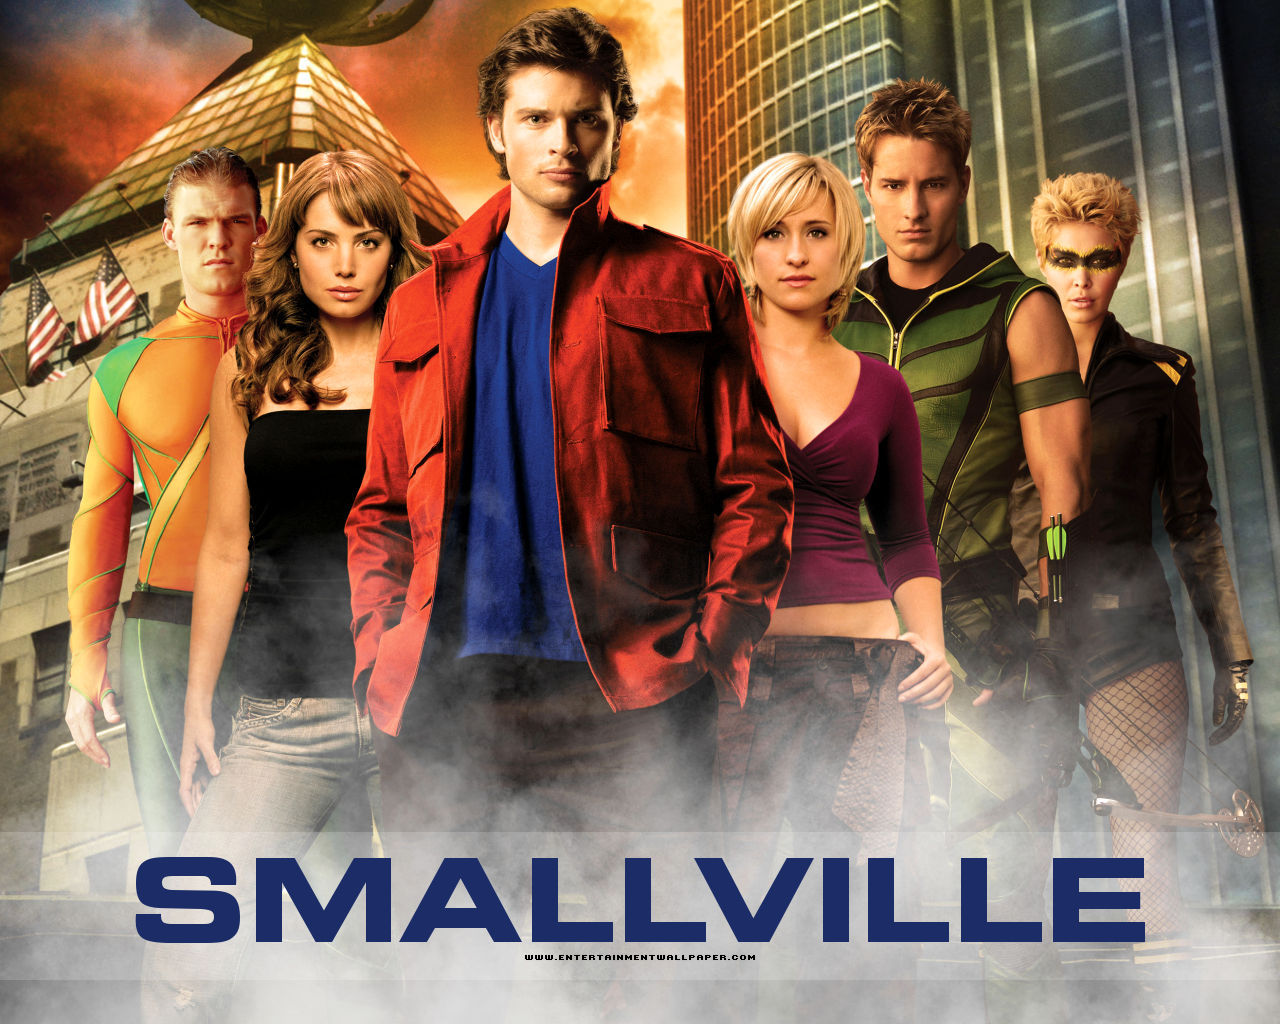 smallville lois and clark wallpapers wallpapersafari